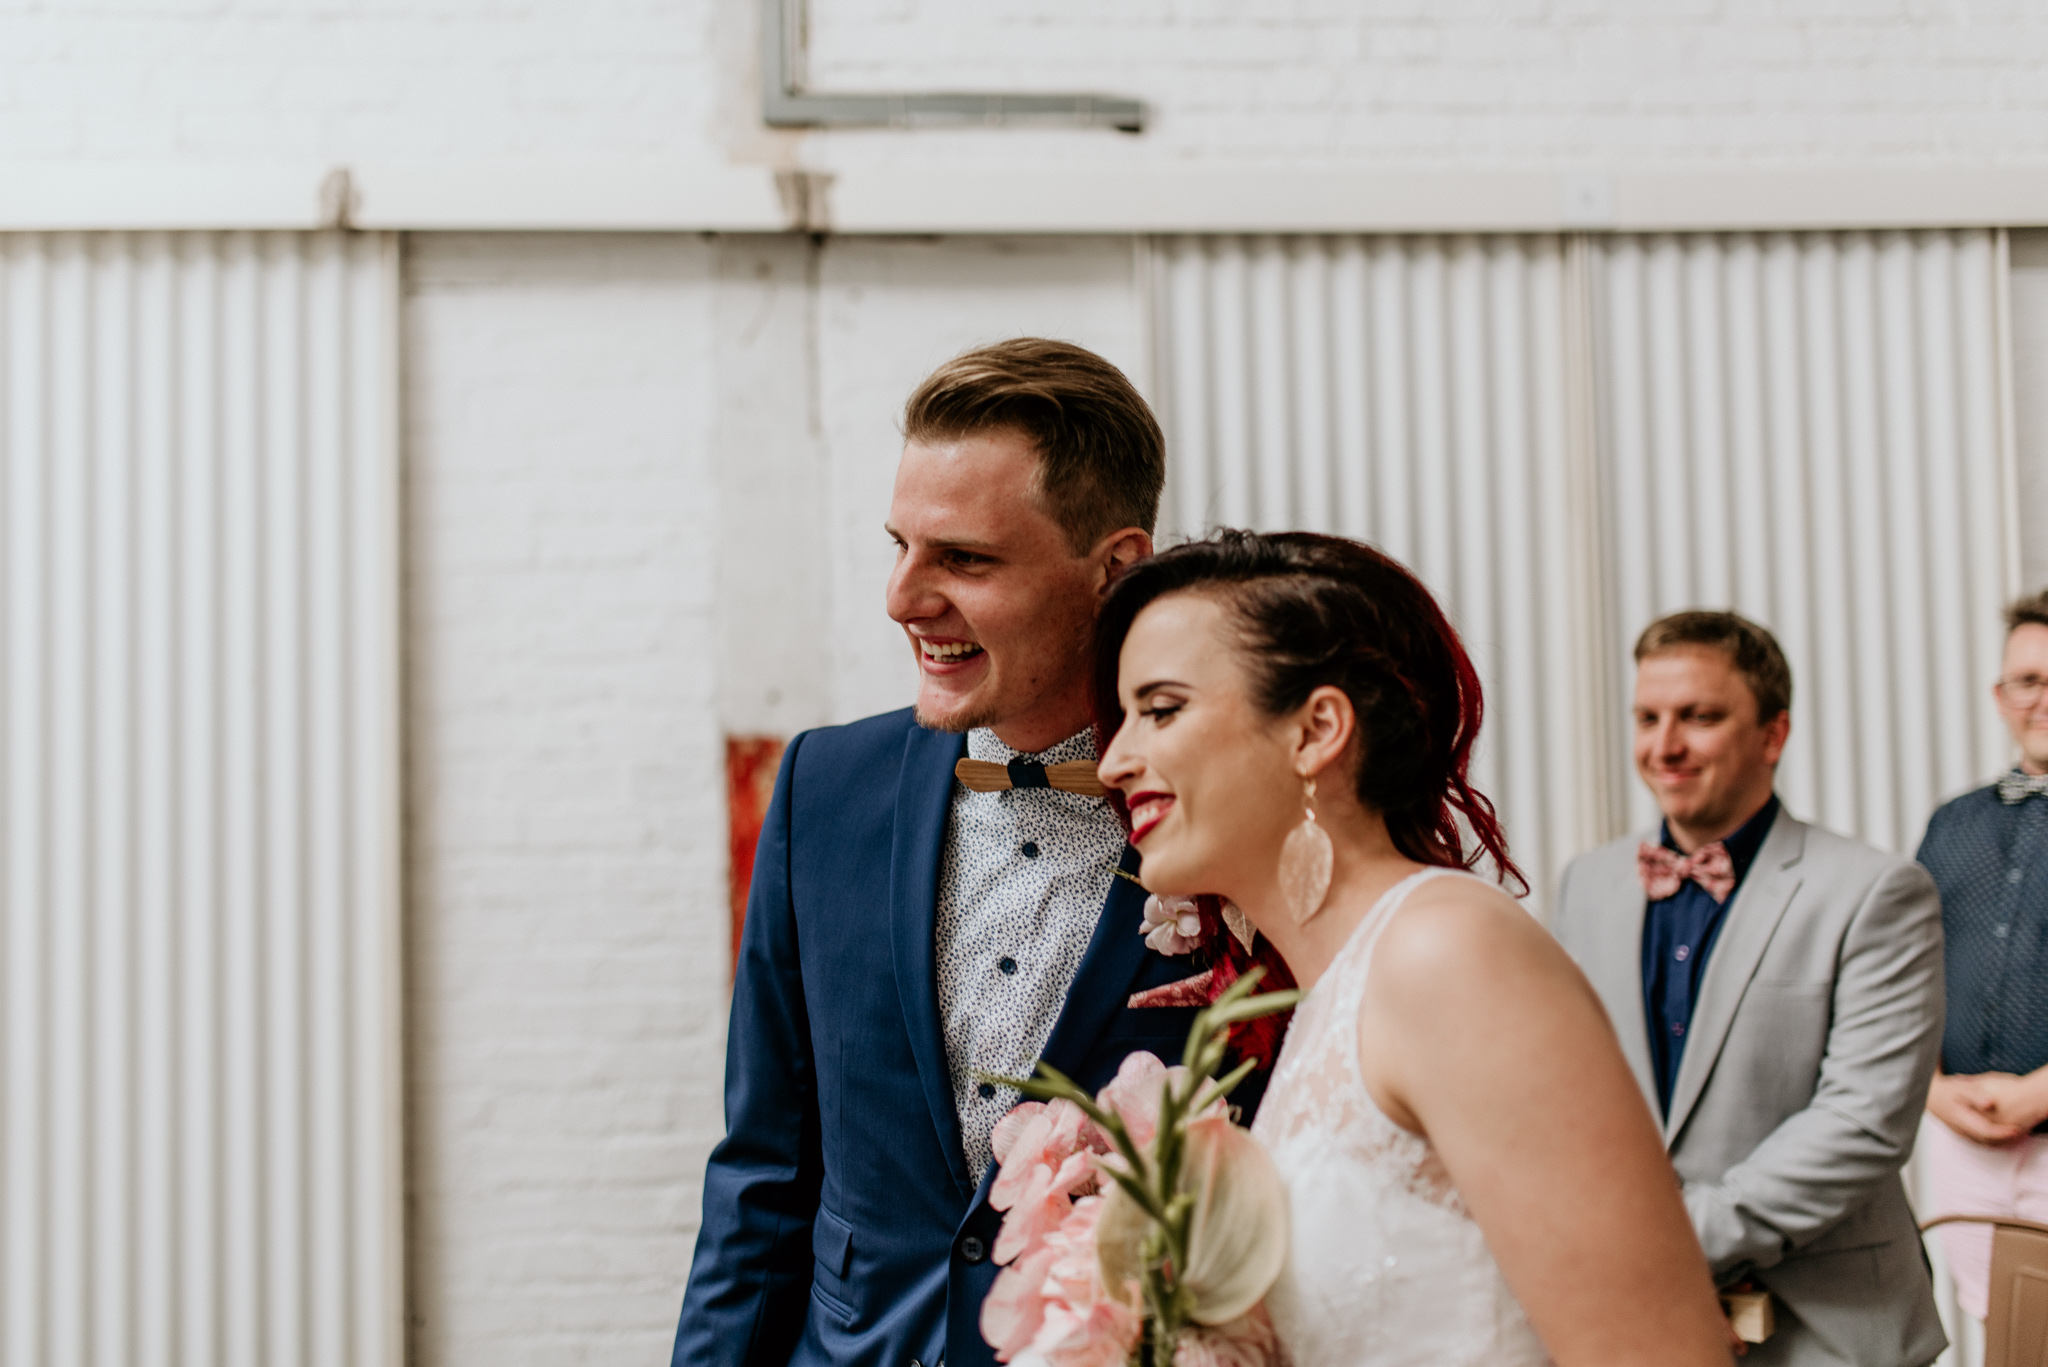 Groom in blue suit and bride at alter in maboneng johannesburg city - by Dillon Kin Photography